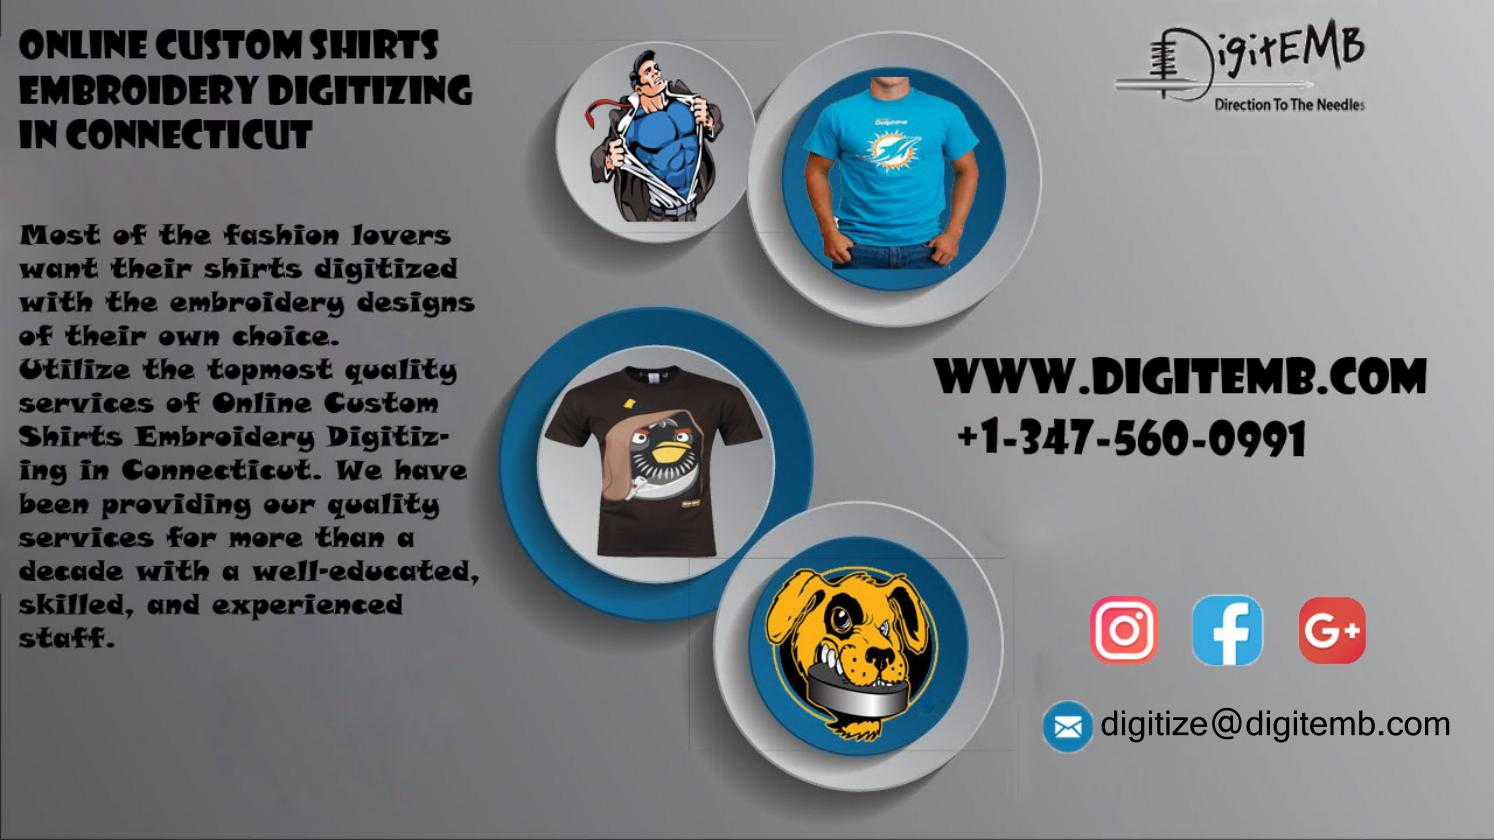 Online Custom Shirts Embroidery Digitizing in Connecticut by